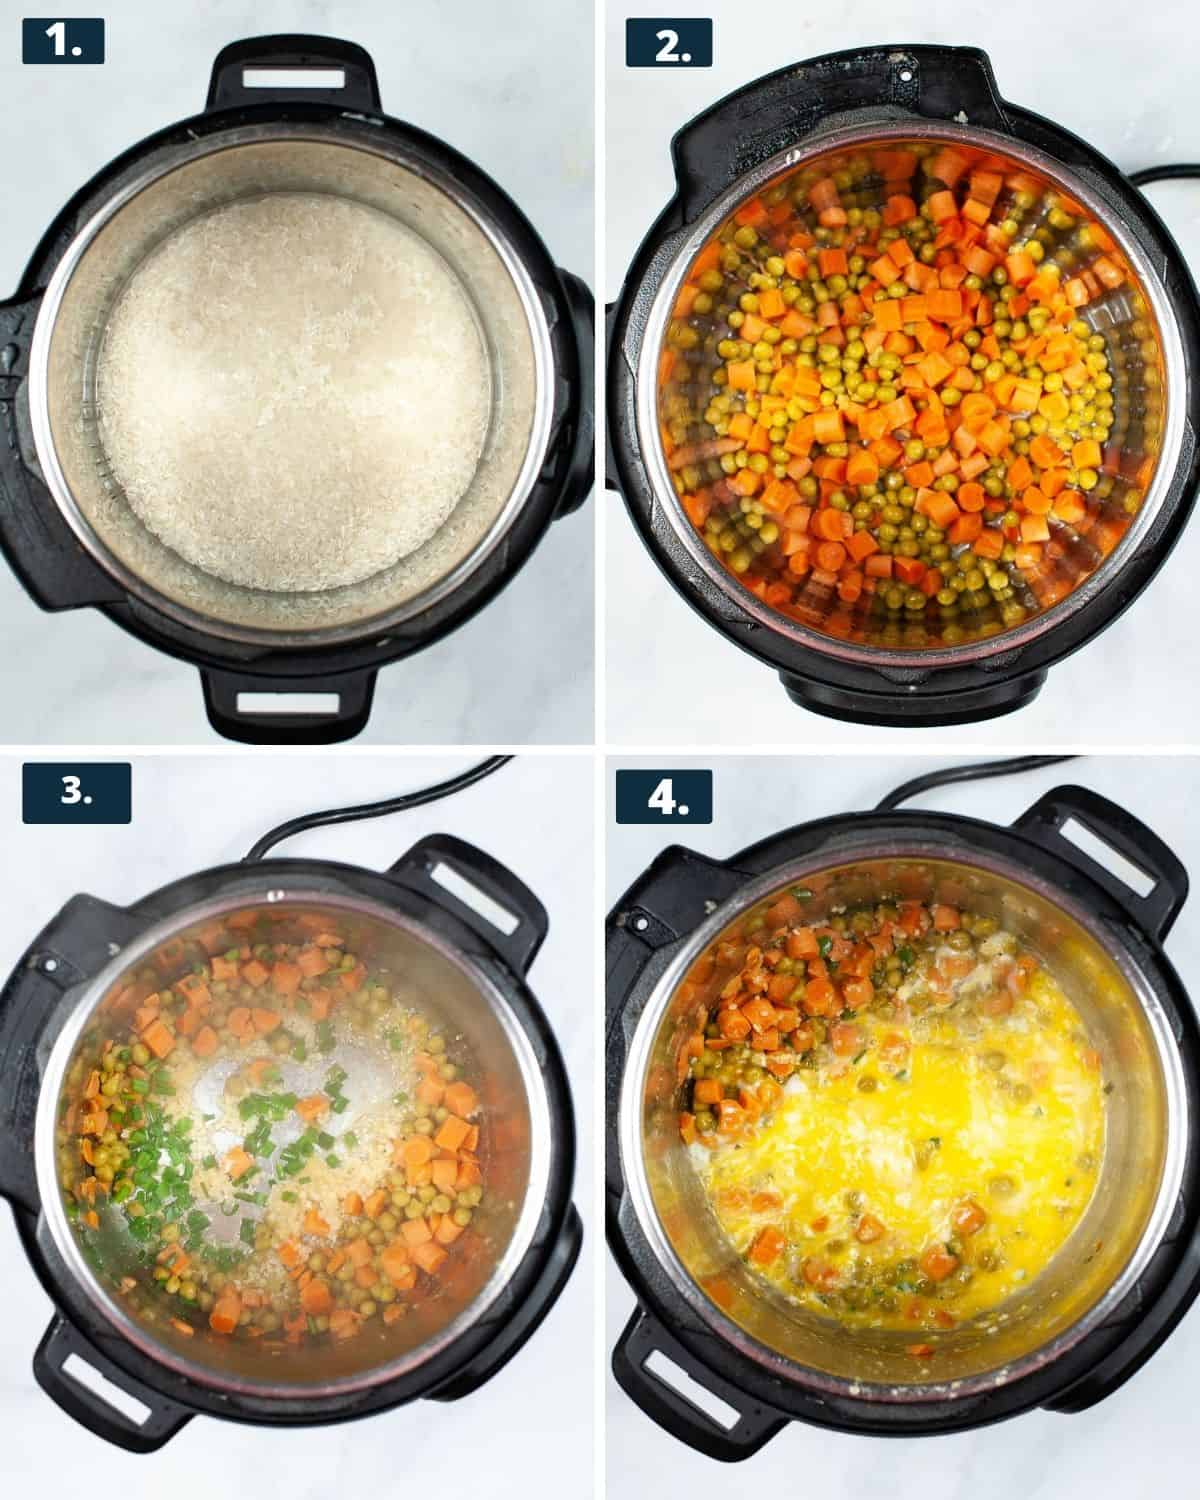 4 photos,1 rice in the Instant Pot, 2 Peas and carrots in the Instant Pot. #